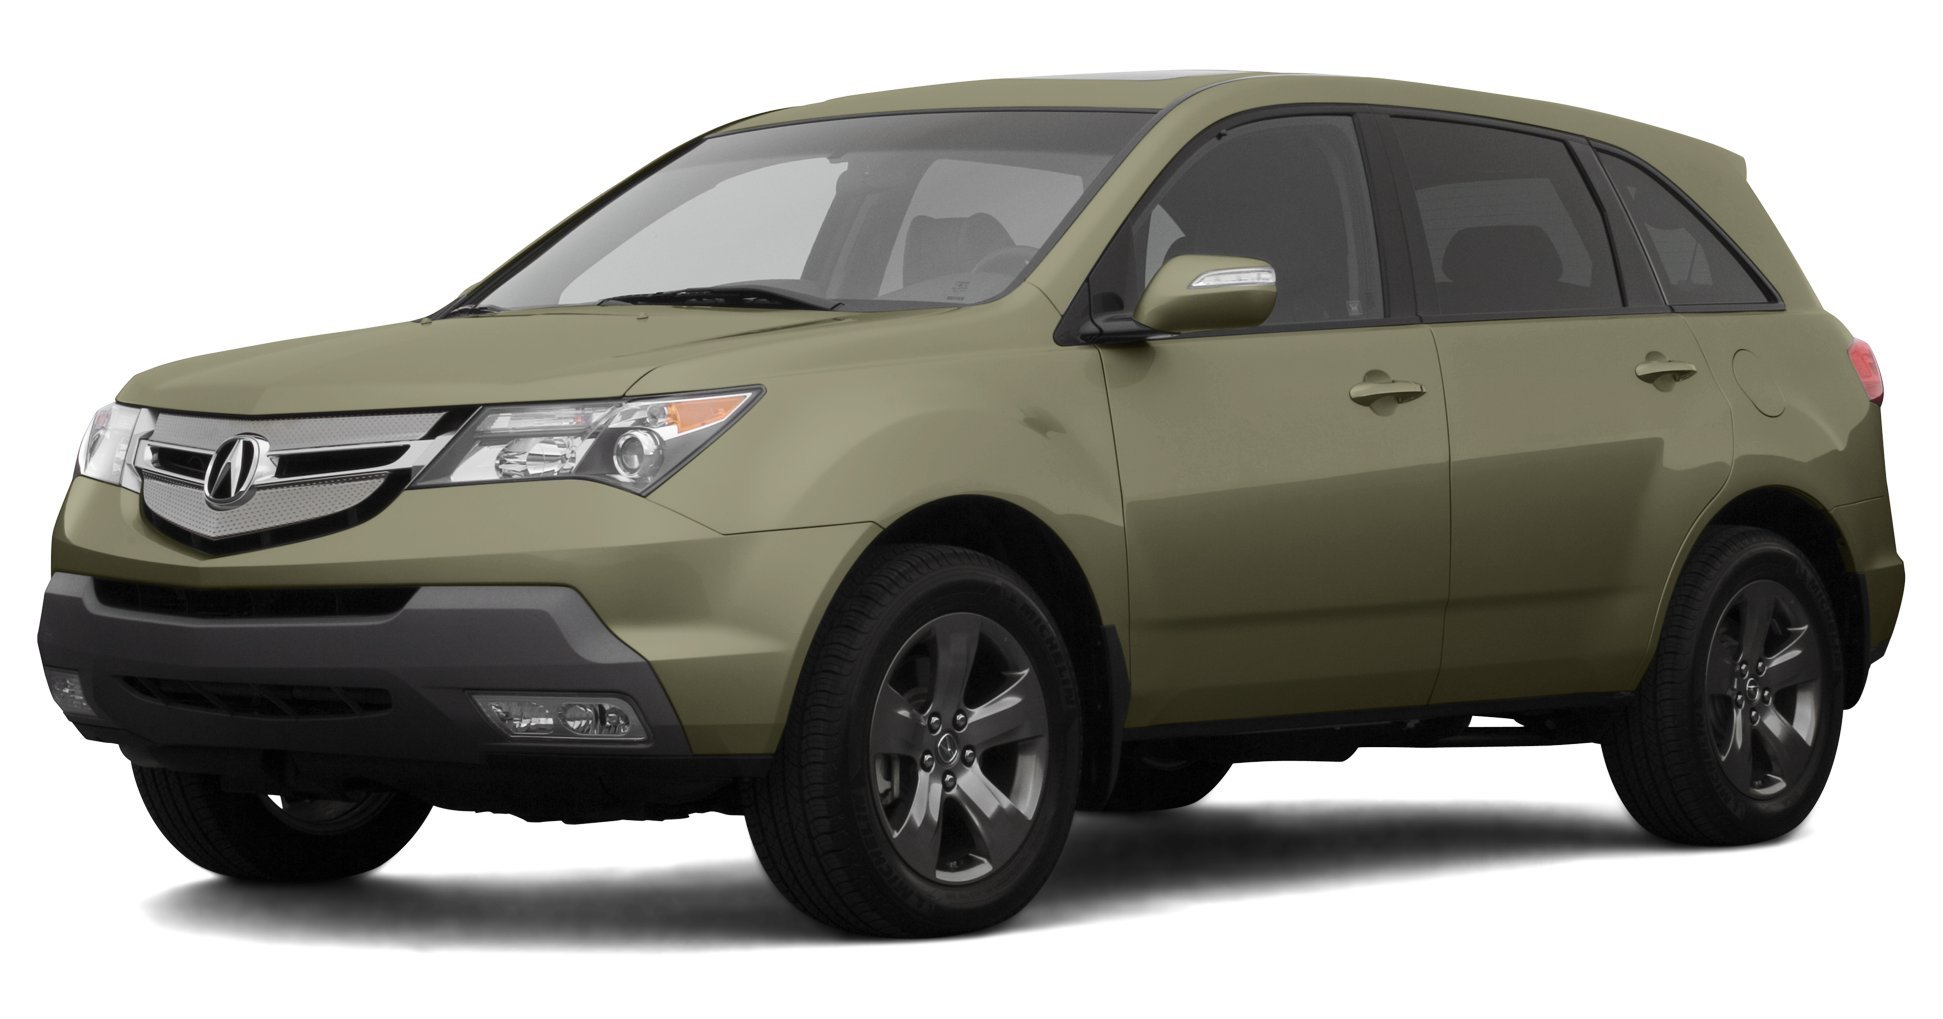 Amazon 2007 Acura MDX Reviews and Specs Vehicles